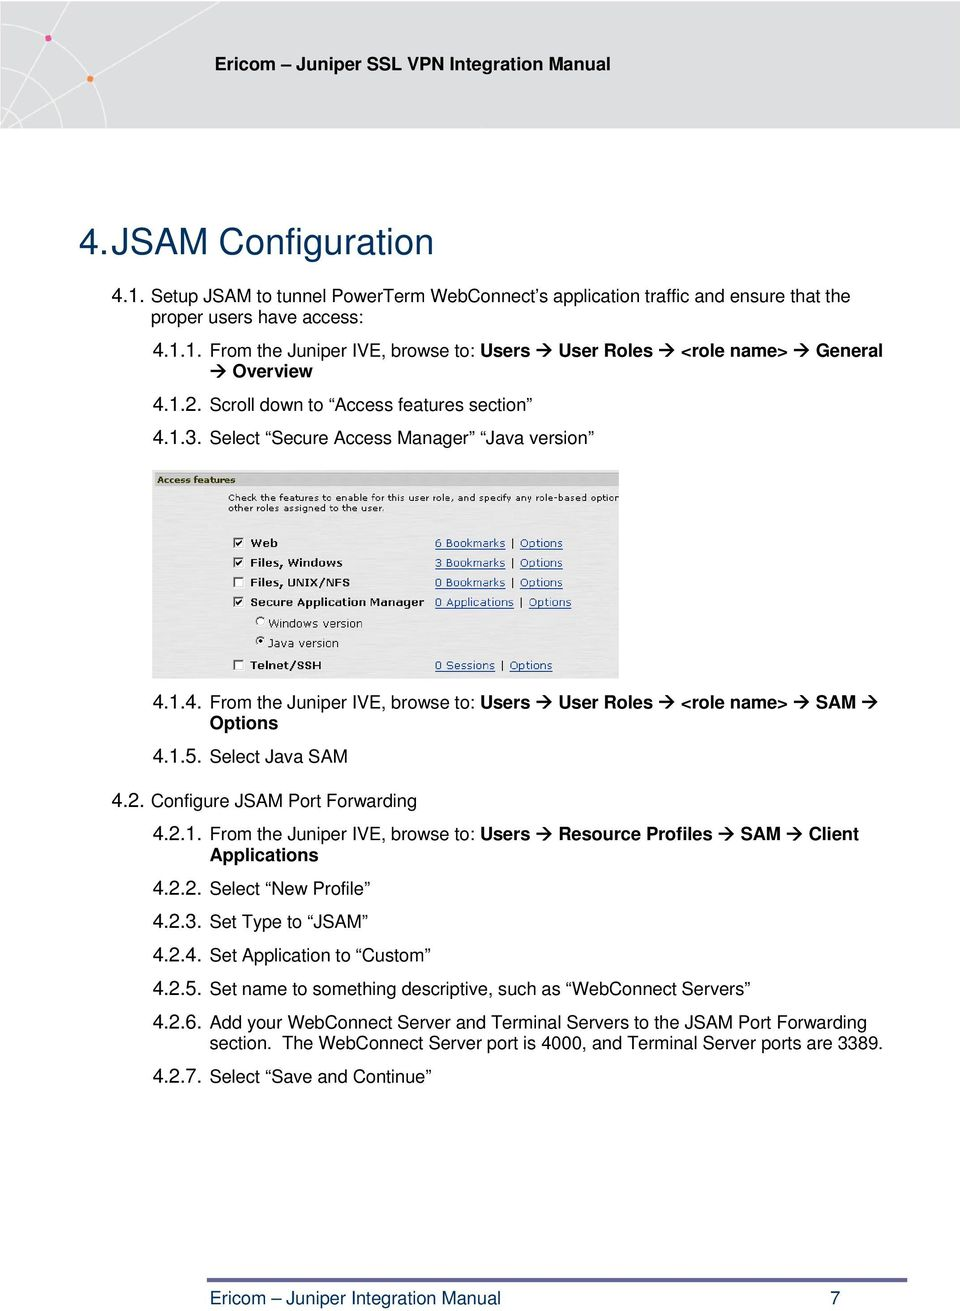 2. Configure JSAM Port Forwarding 4.2.1. From the Juniper IVE, browse to: Users Resource Profiles SAM Client Applications 4.2.2. Select New Profile 4.2.3. Set Type to JSAM 4.2.4. Set Application to Custom 4.